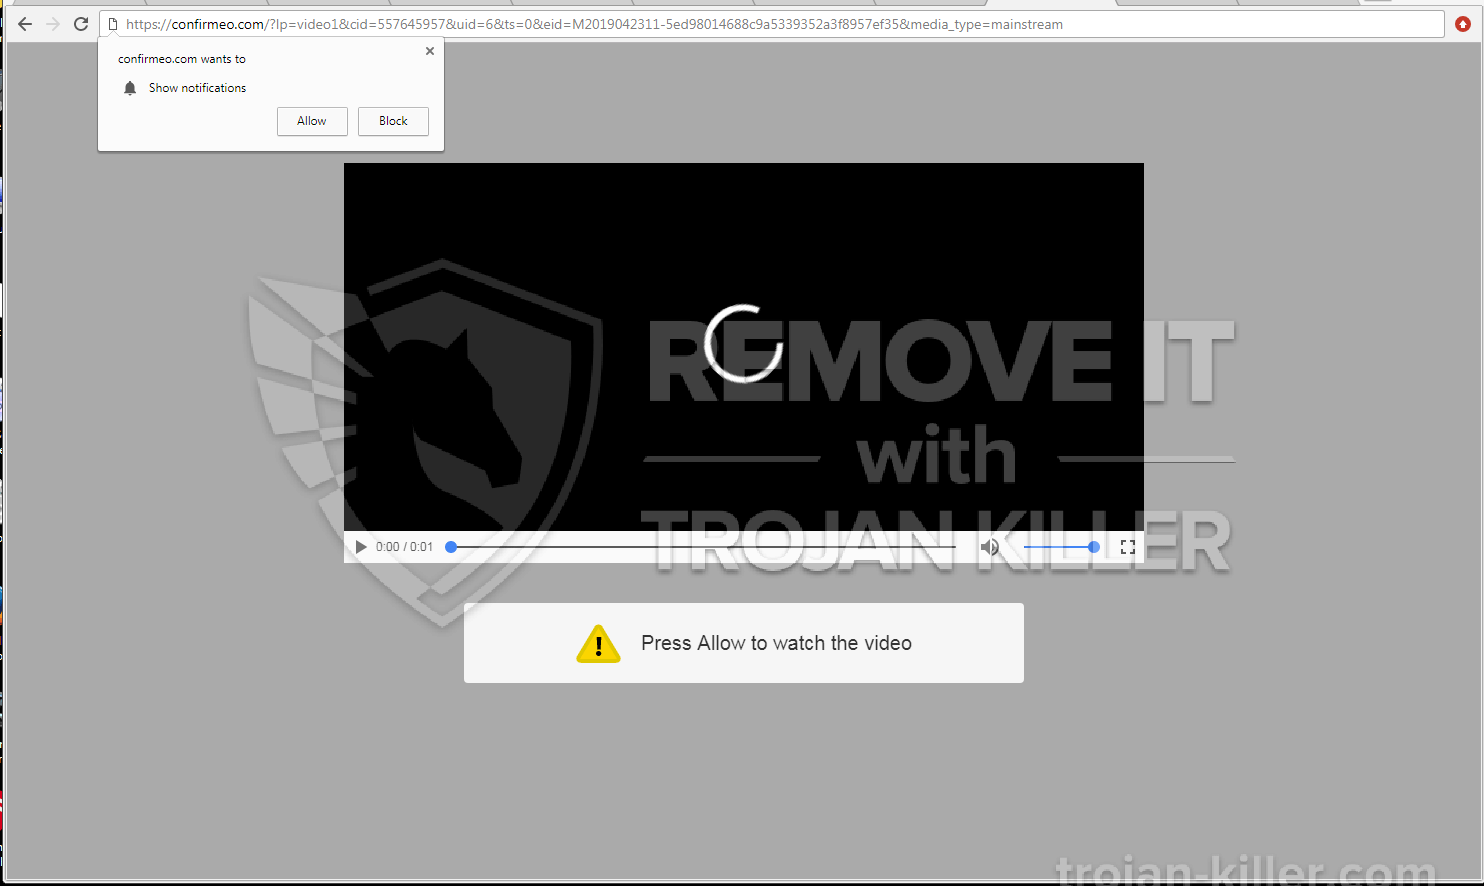 remove Confirmeo.com